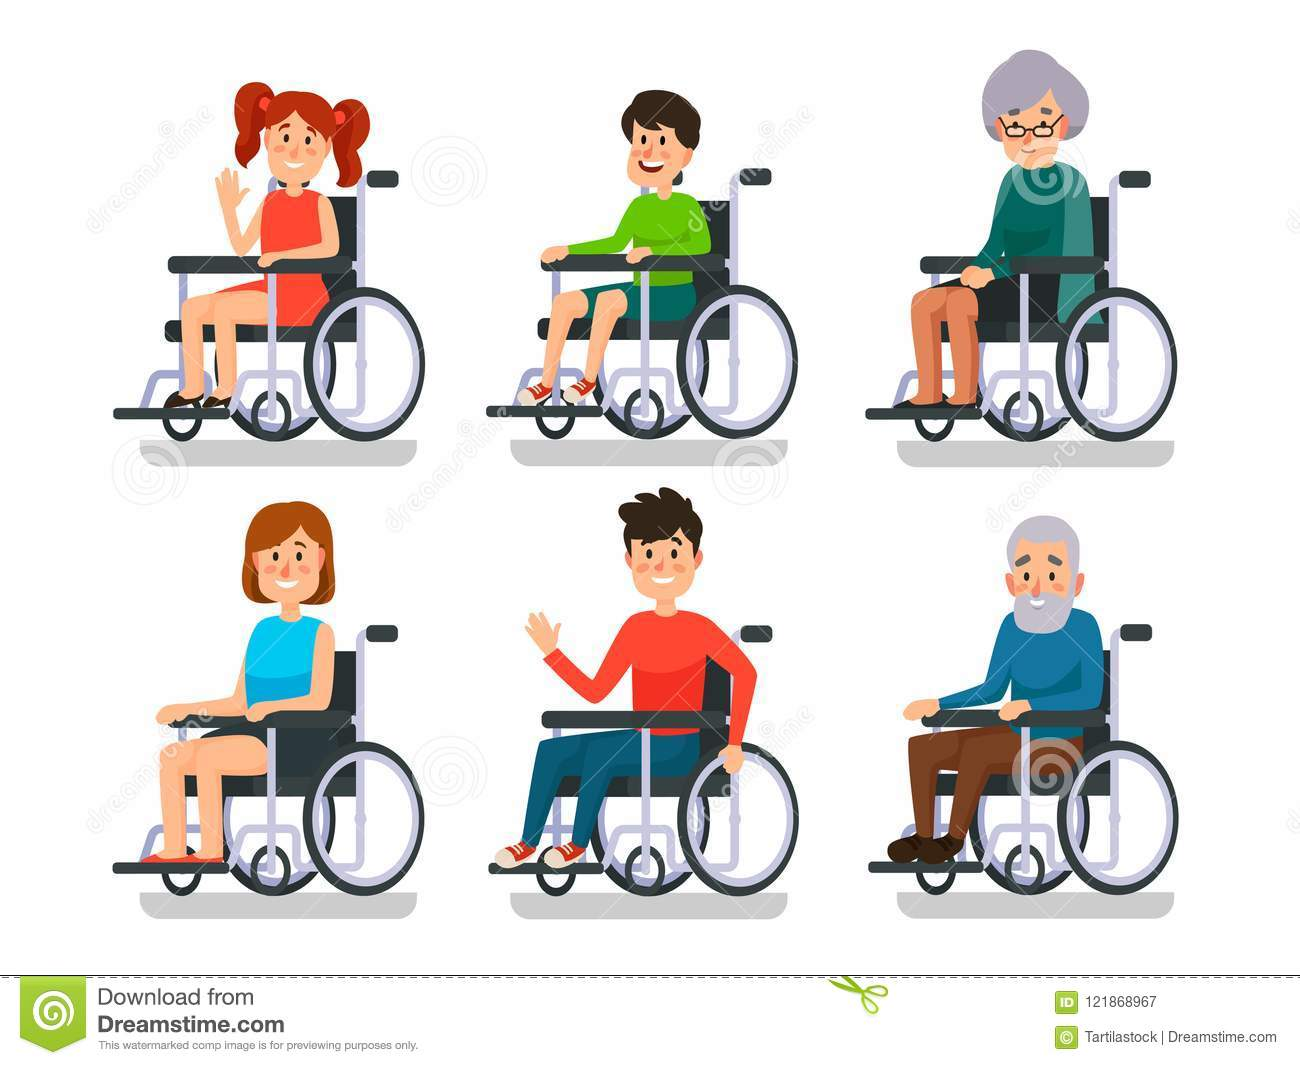 Image of: Disabled Es19 Persons In Wheelchair Hospital Patient With Disability Disabled Young Boy And Girl Man Woman Character And Happy Old People Patients Invalid Sitting In Dreamstimecom Persons In Wheelchair Hospital Patient With Disability Disabled